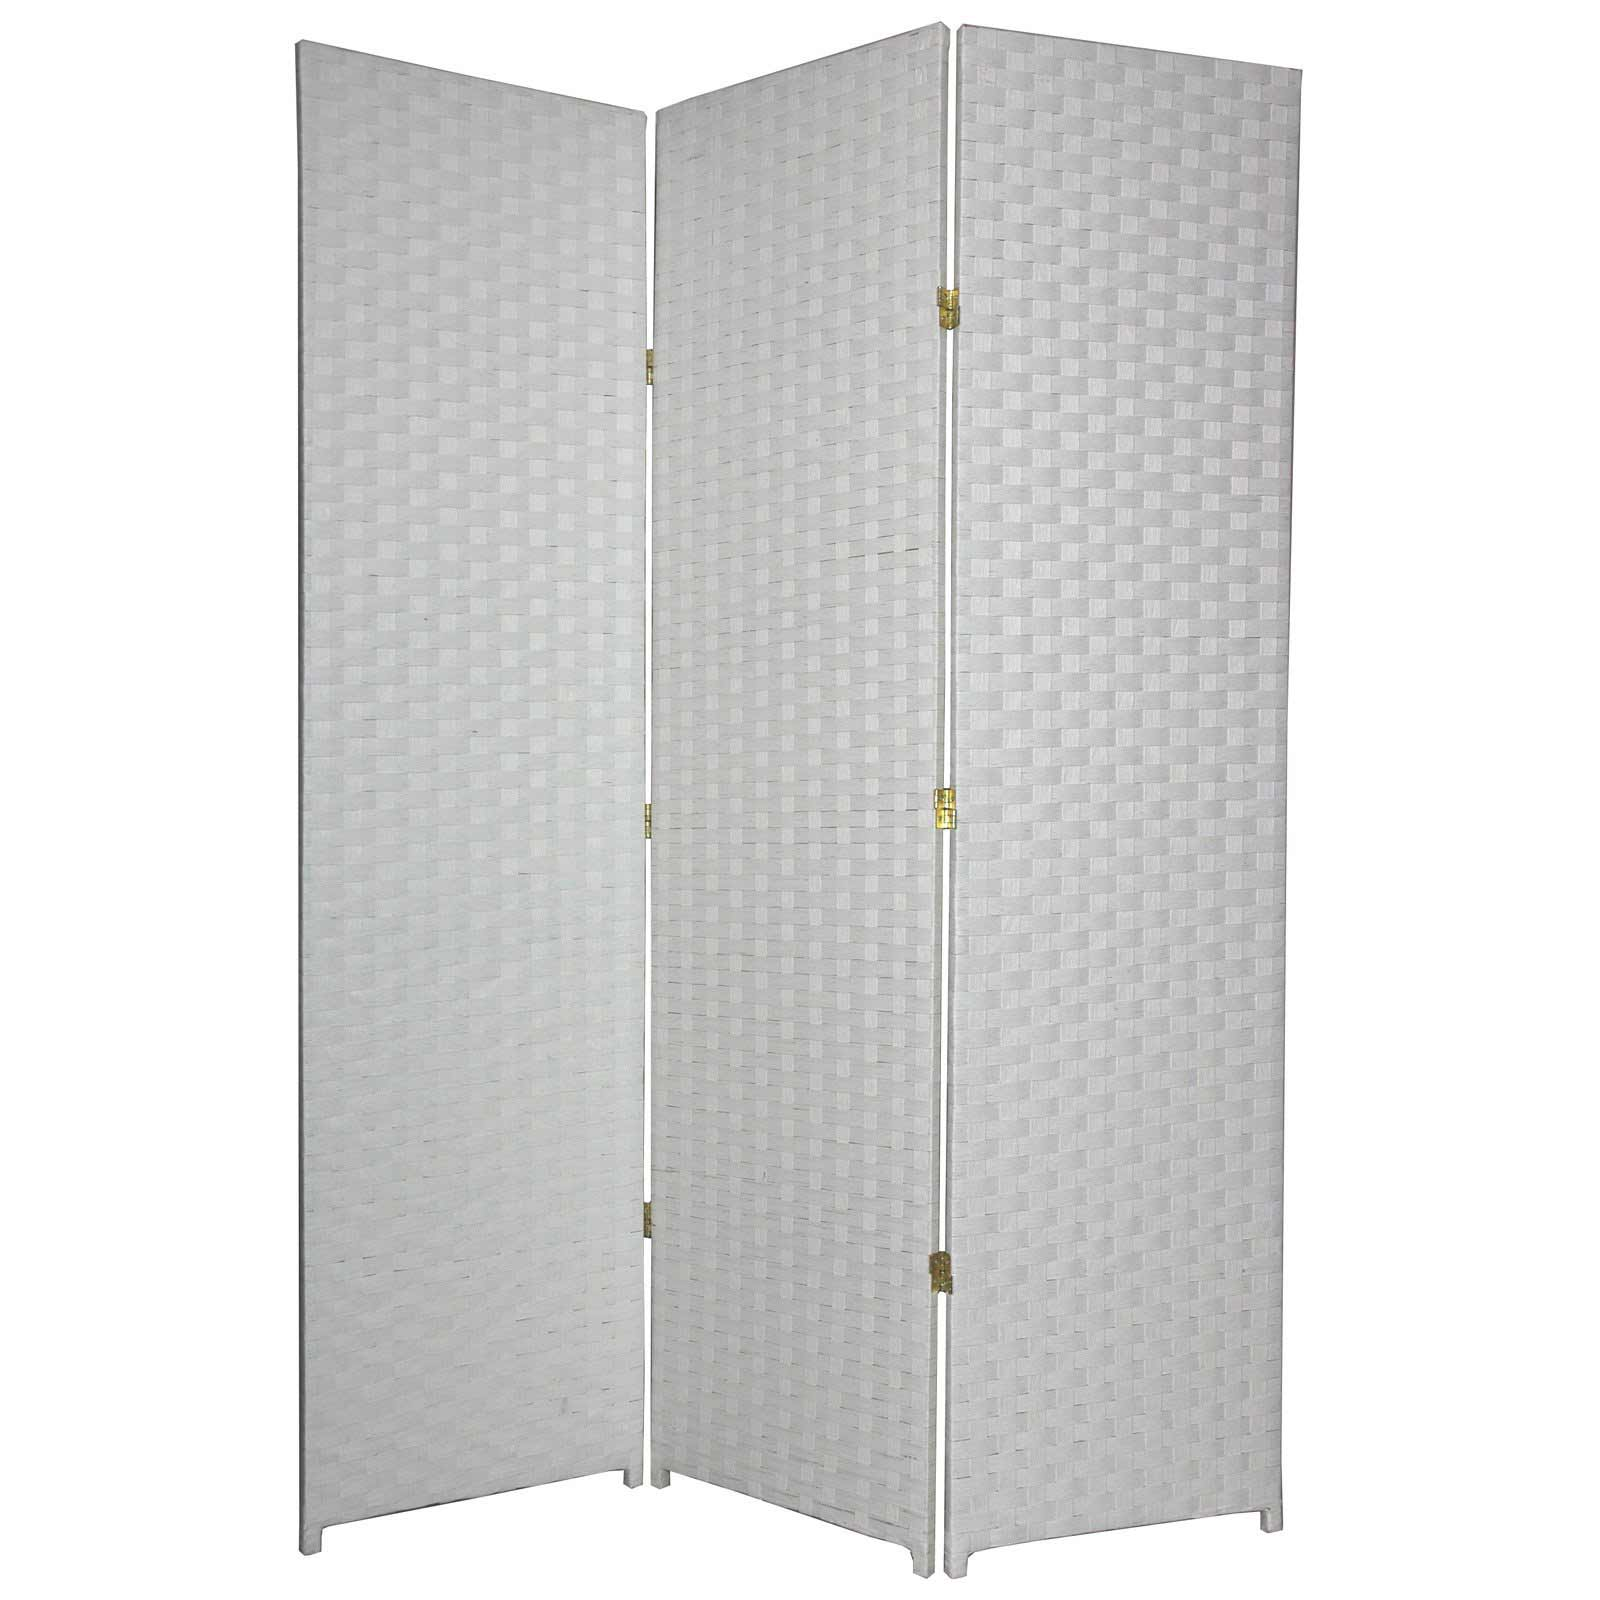 White room divider 4 panel feel the home - Collapsible room divider ...